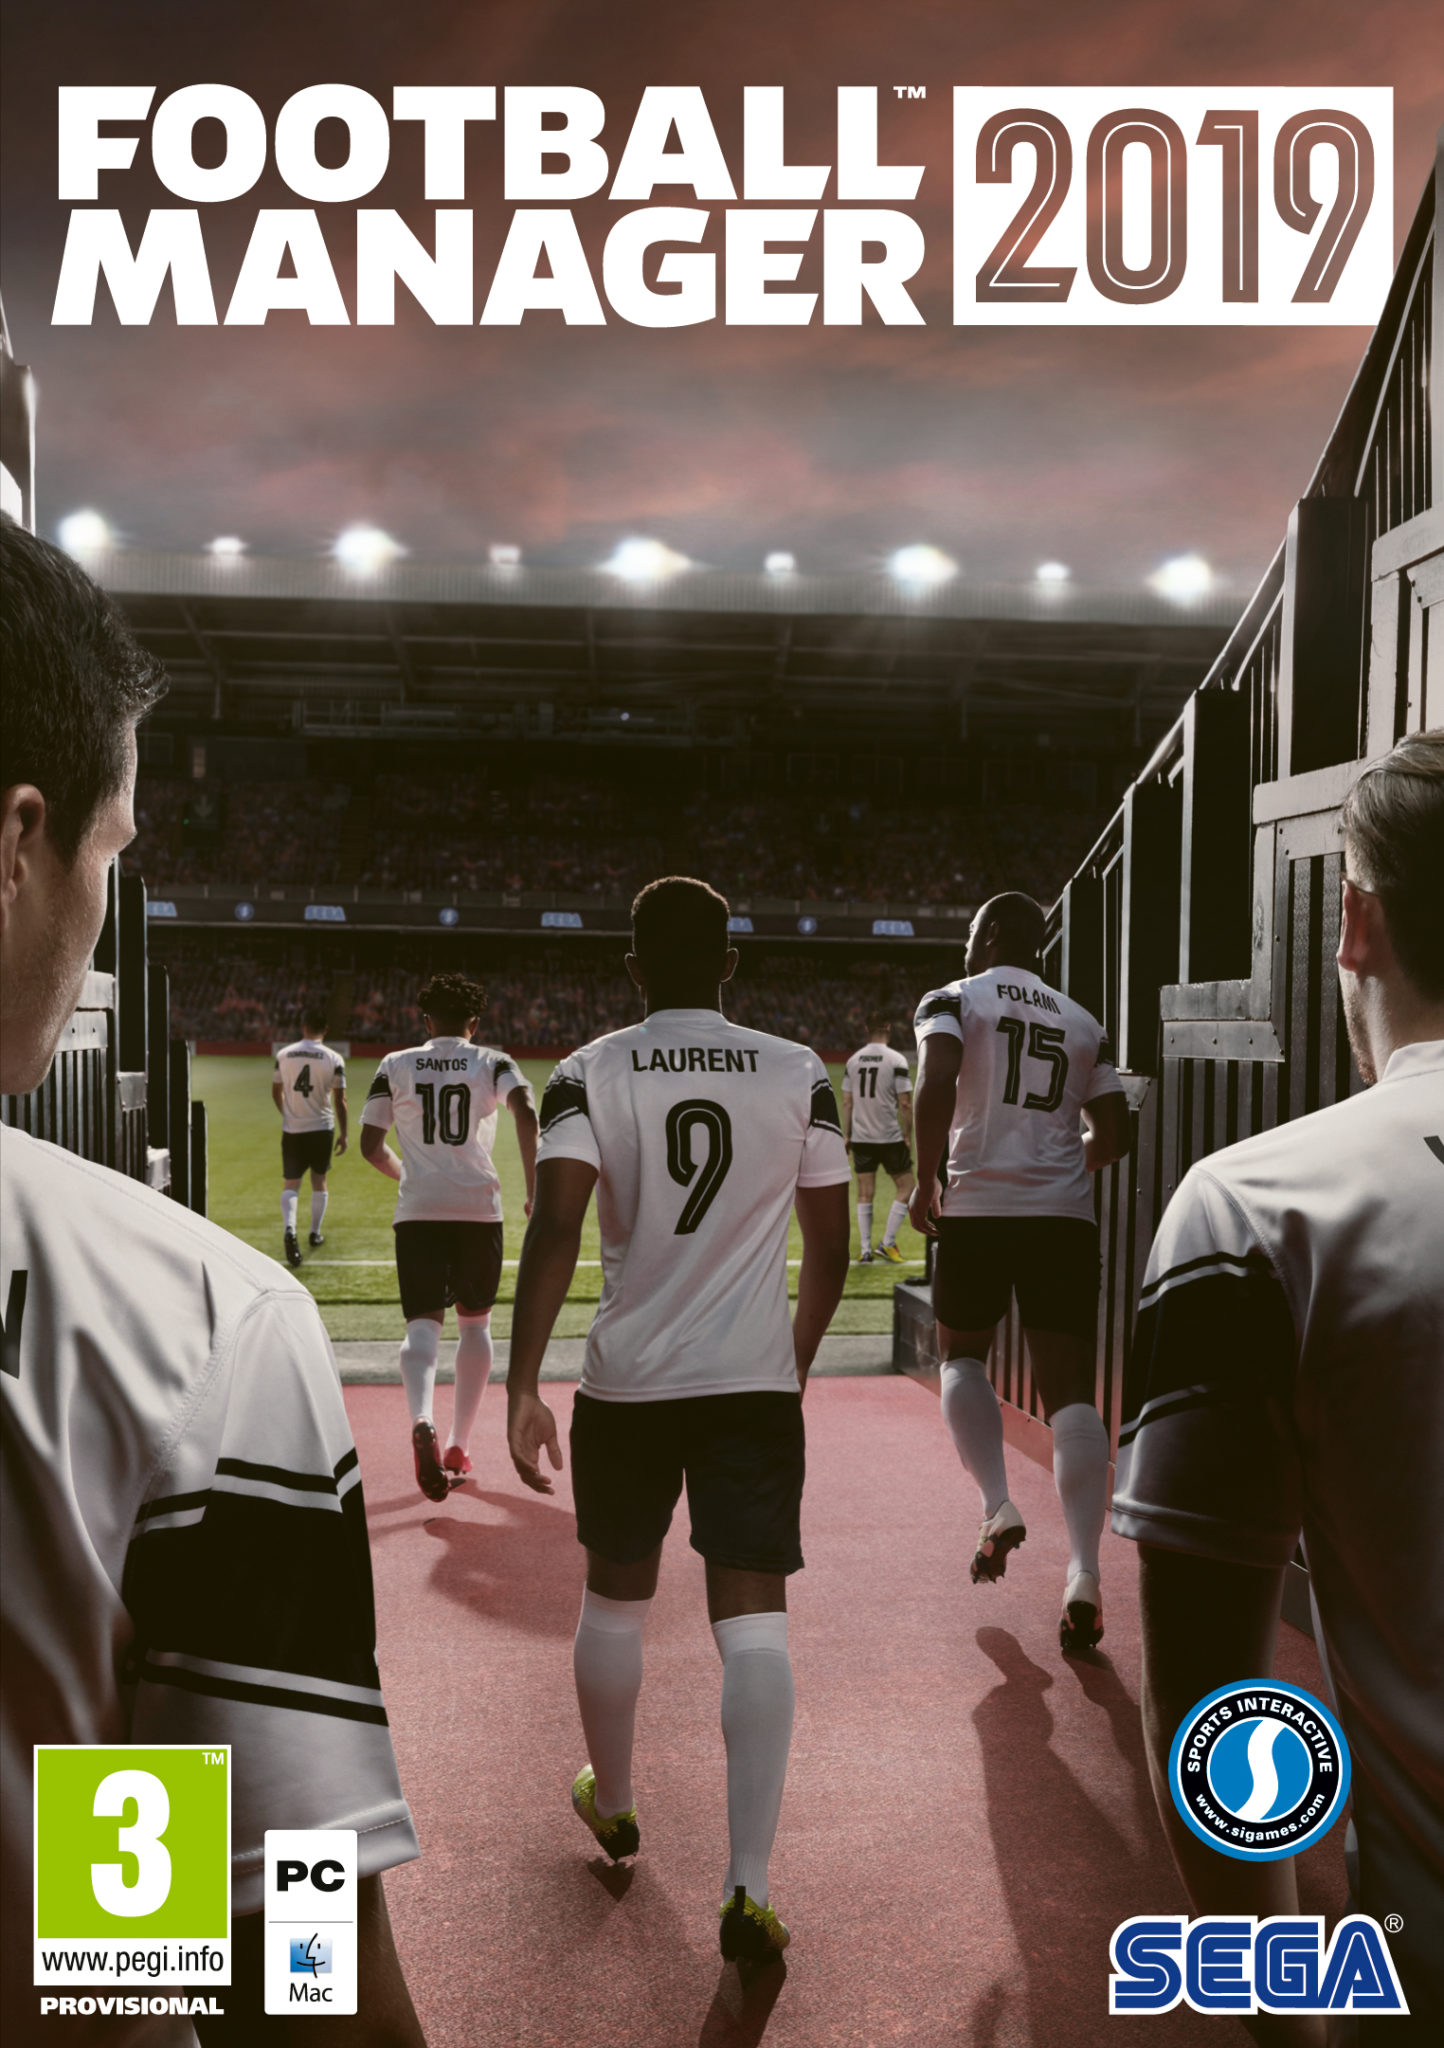 Football Manager 2020 opts for eco-friendly cardboard game cases